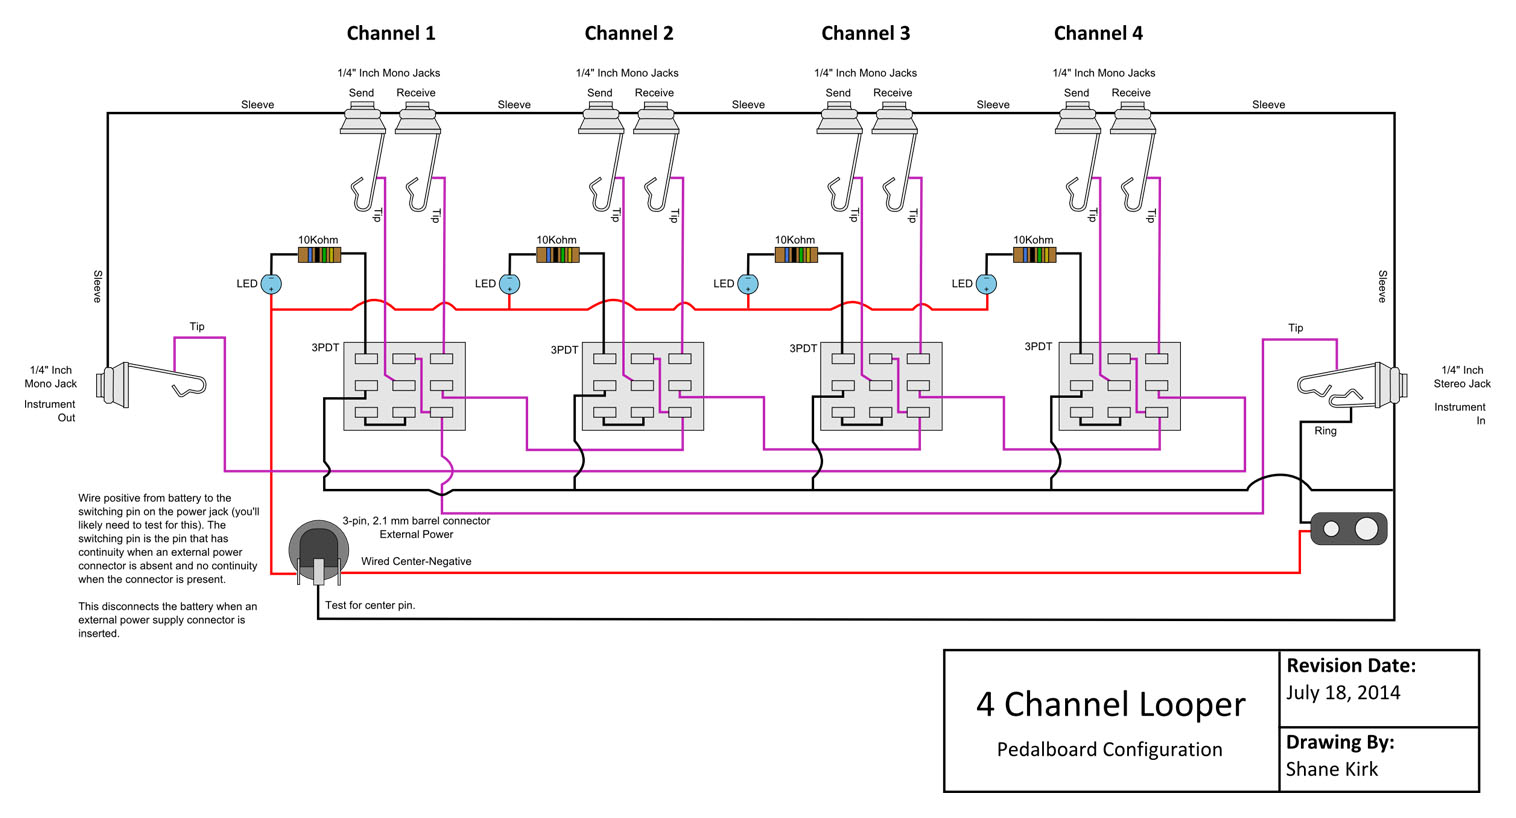 adfa08 looper guitar pedal wiring diagram | wiring resources  wiring resources